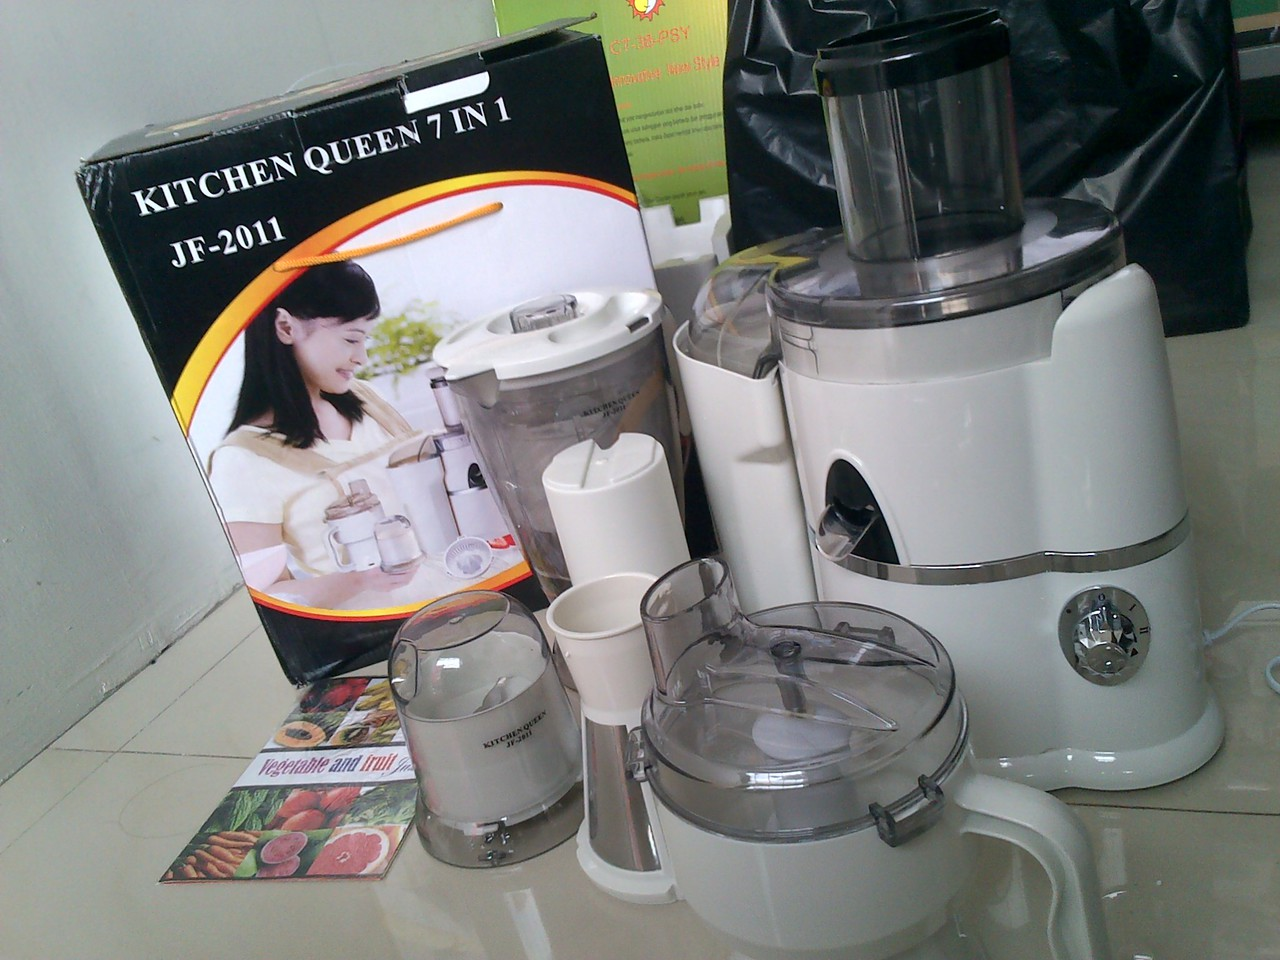 Queen S Slow Juicer : Kitchen Queen Cooker Power Juicer 7 in 1 Blender Makanan Bayi Moegen Germany Alat Buat Susu ...